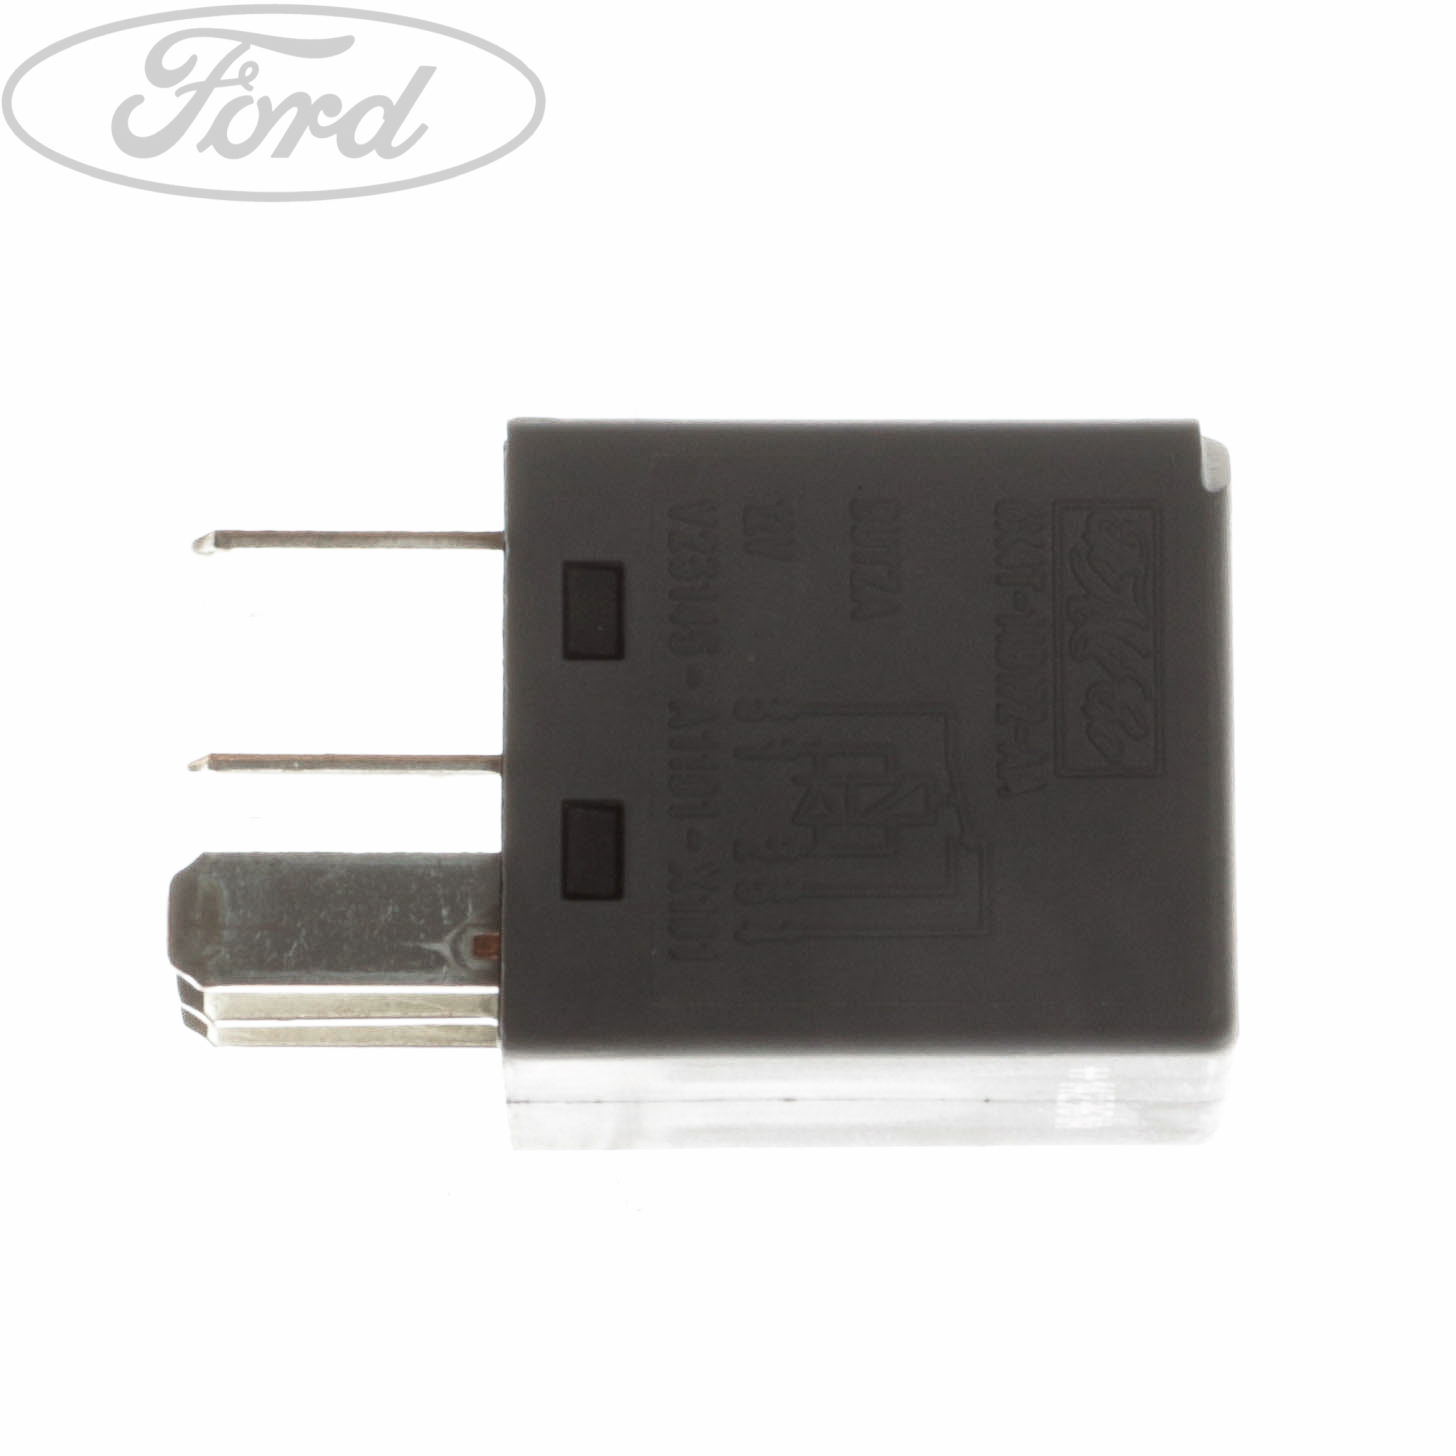 Ford Focus Wiper Motor Wiring Diagram: Genuine Ford Focus MK1 Front Rear Windscreen Wiper Relay